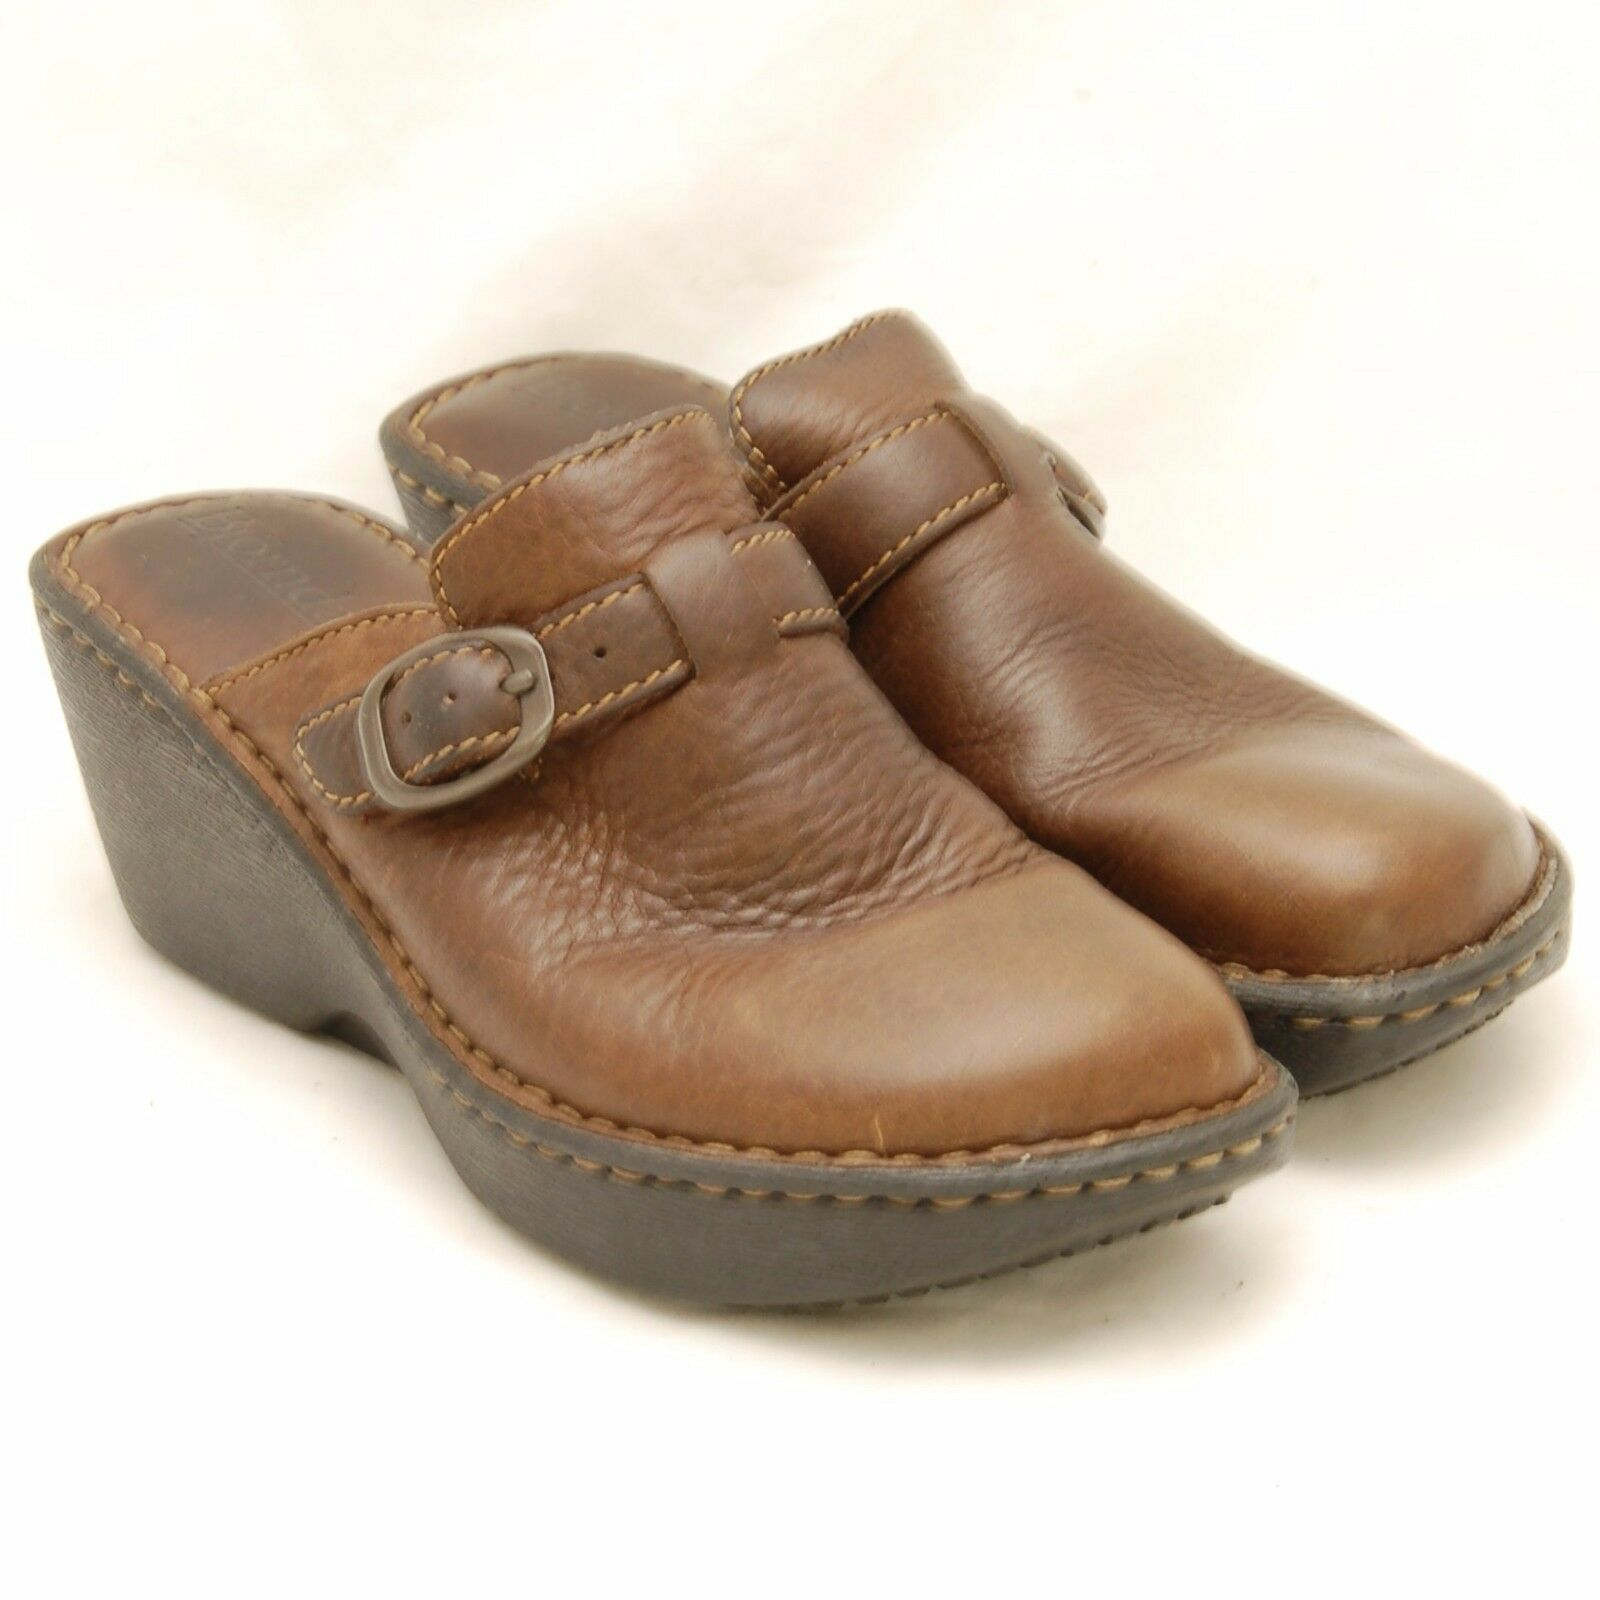 Bjorndal Explore Brown Leather M Clogs Women's Size 8 M Leather Slip On Buckle Shoes 61bff9